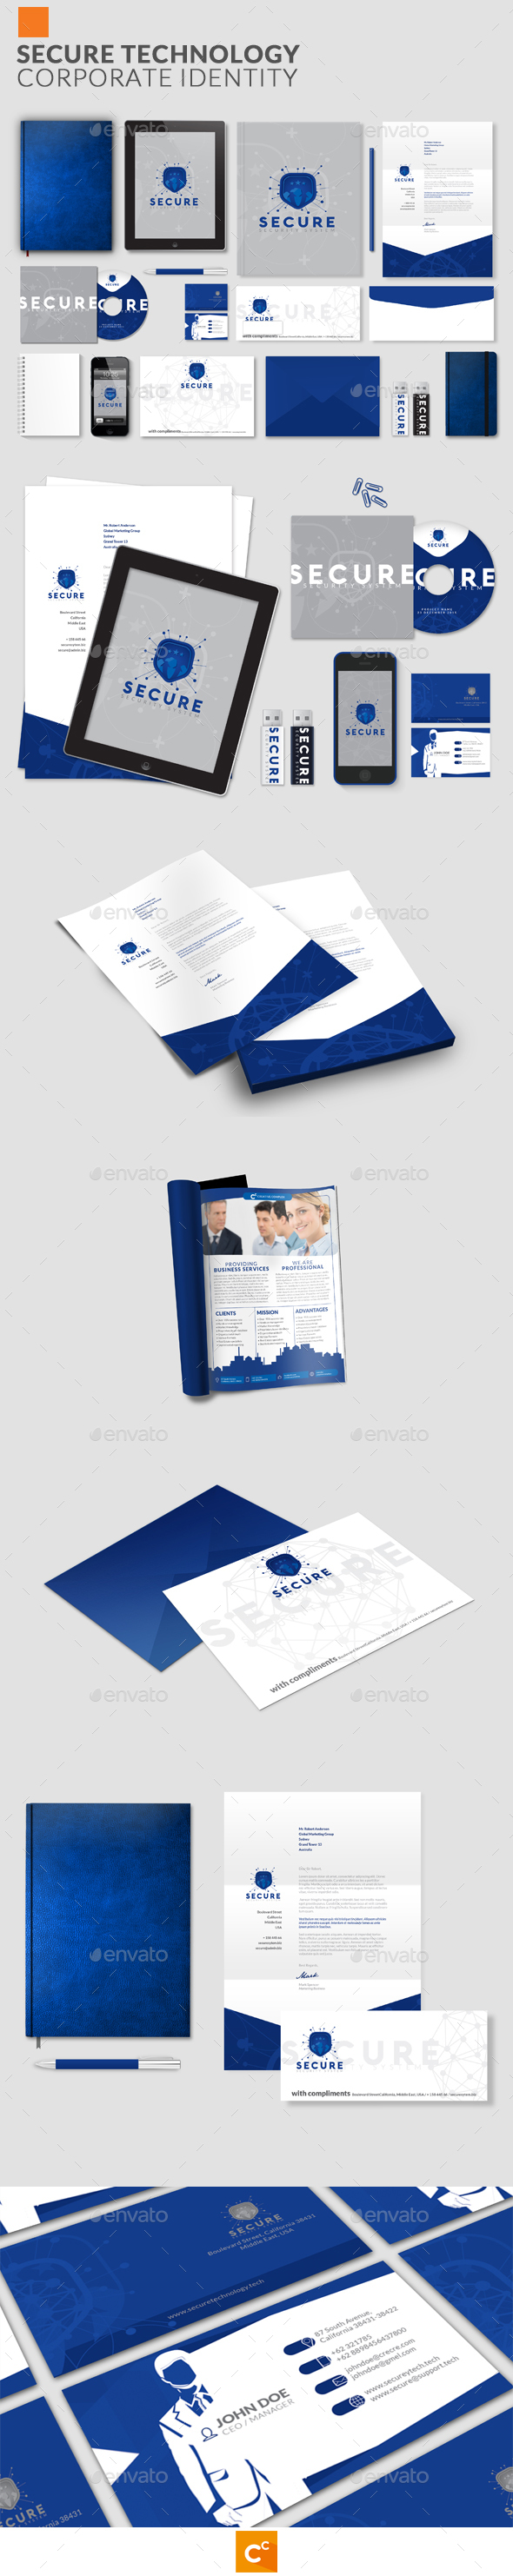 Secure Technology Corporate Identity - Stationery Print Templates